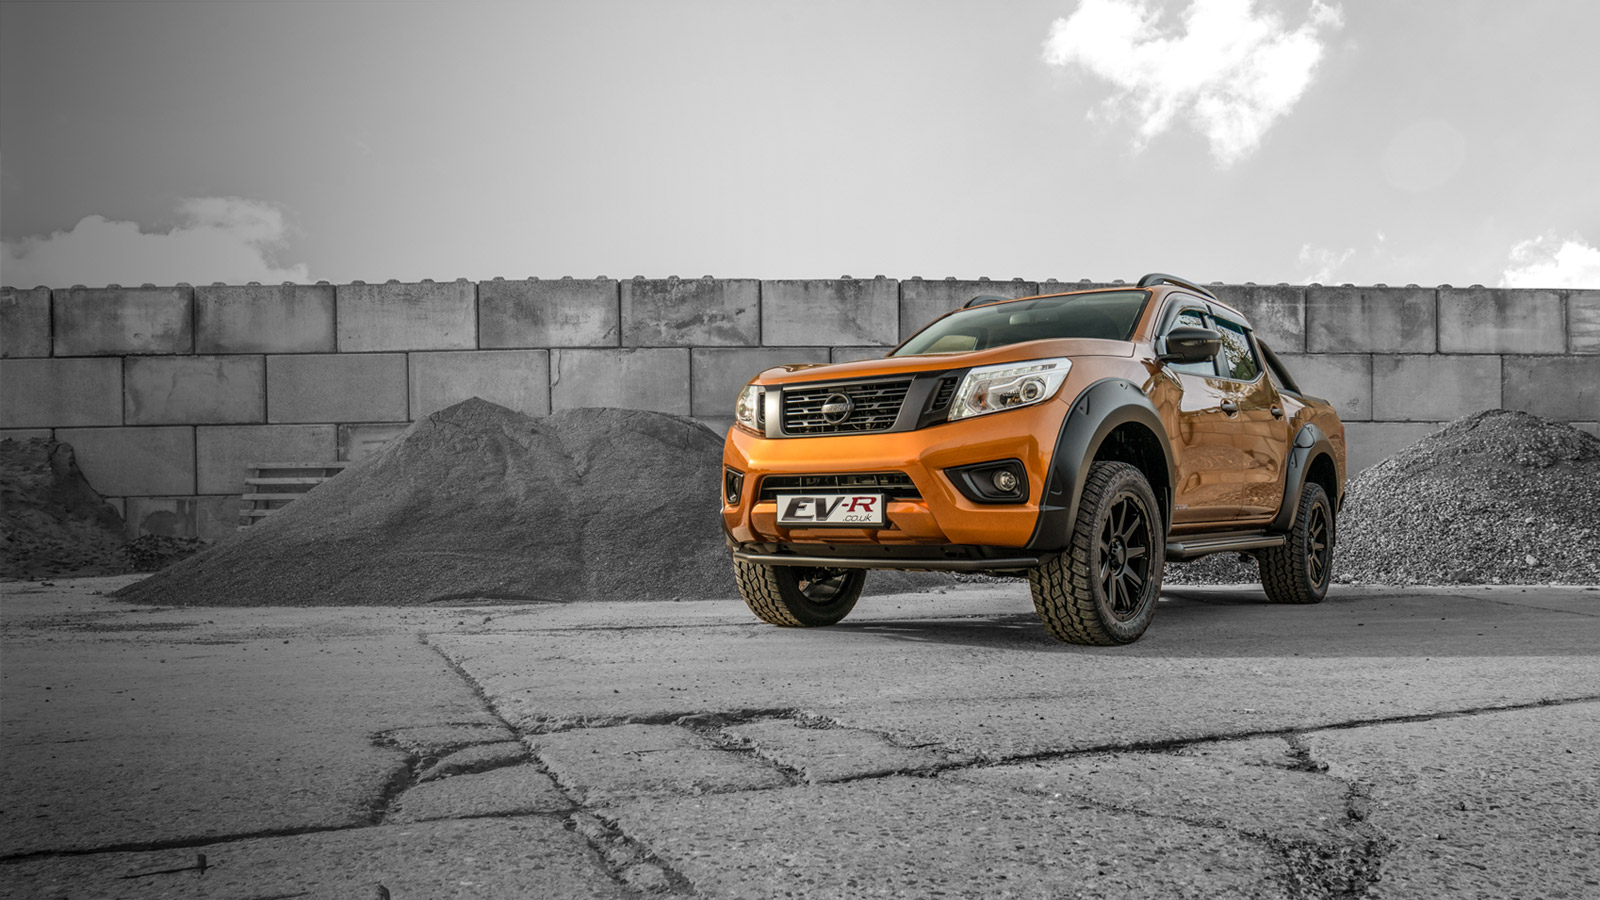 <h1>TALK TO THE NAVARA EXPERTS</h1>